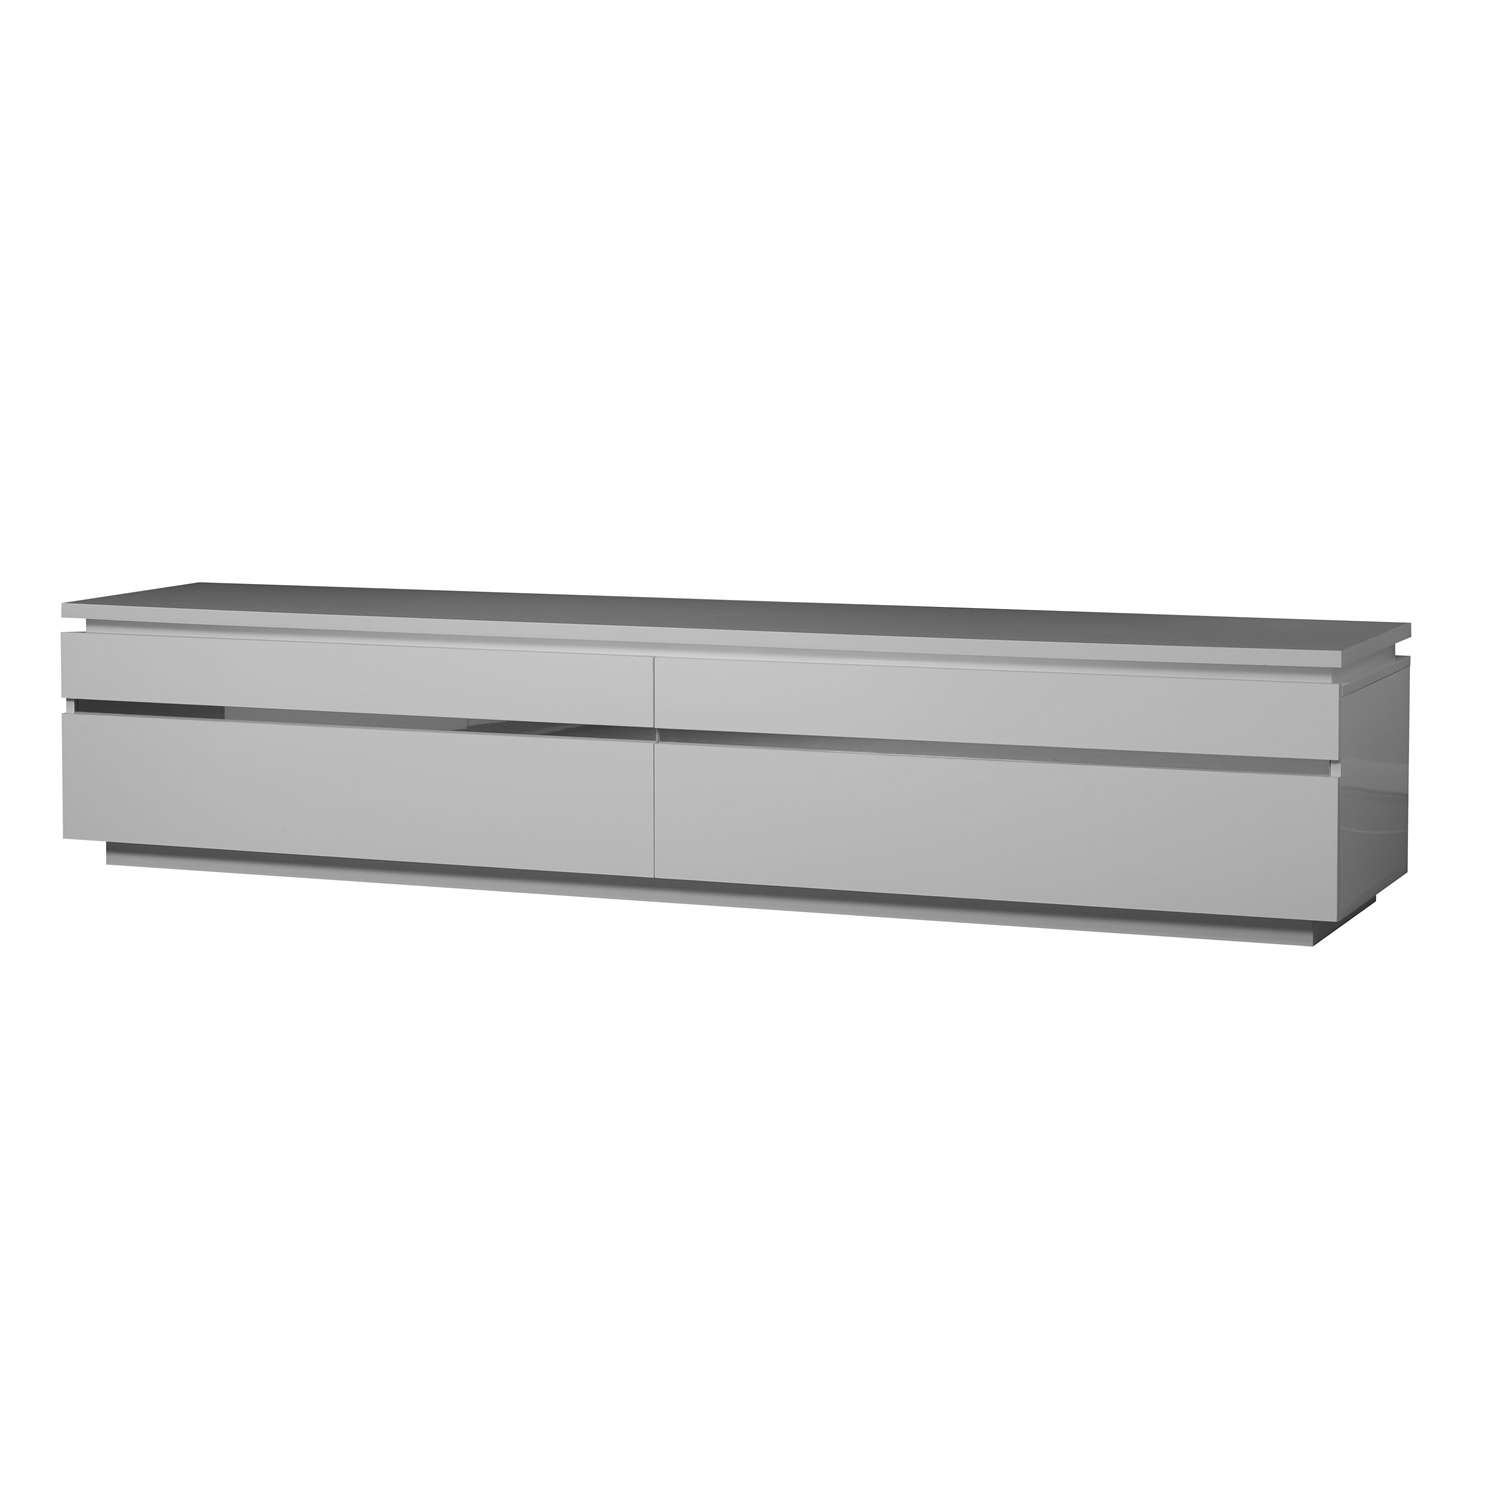 Sciae Electra White Illuminated Tv Unit – Next Day Delivery Sciae Pertaining To Illuminated Tv Stands (View 9 of 20)